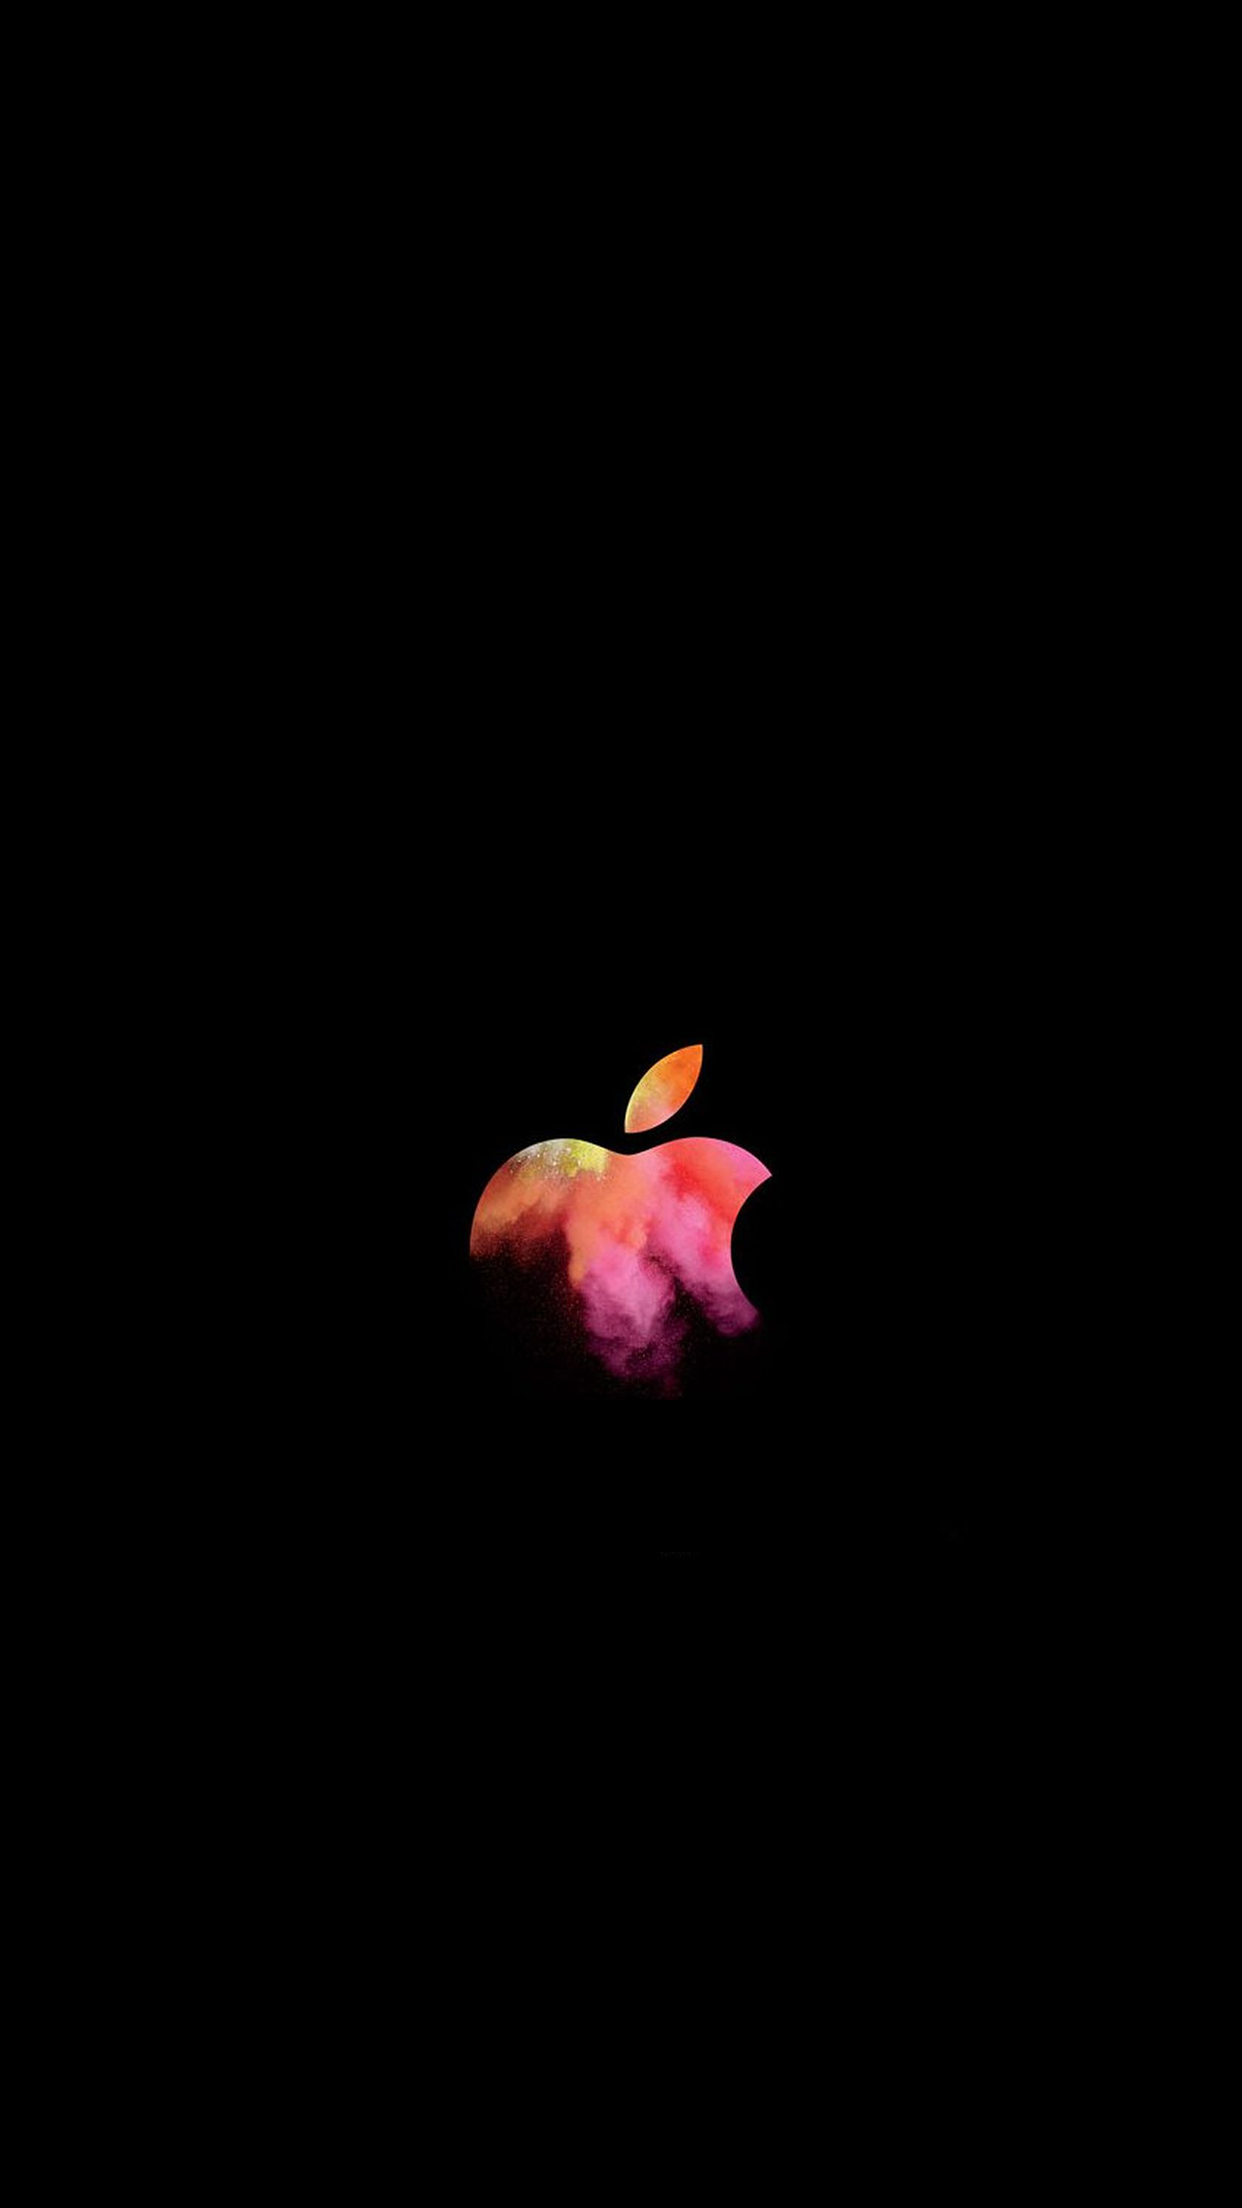 Download Apple Wallpaper For Android Gallerynew